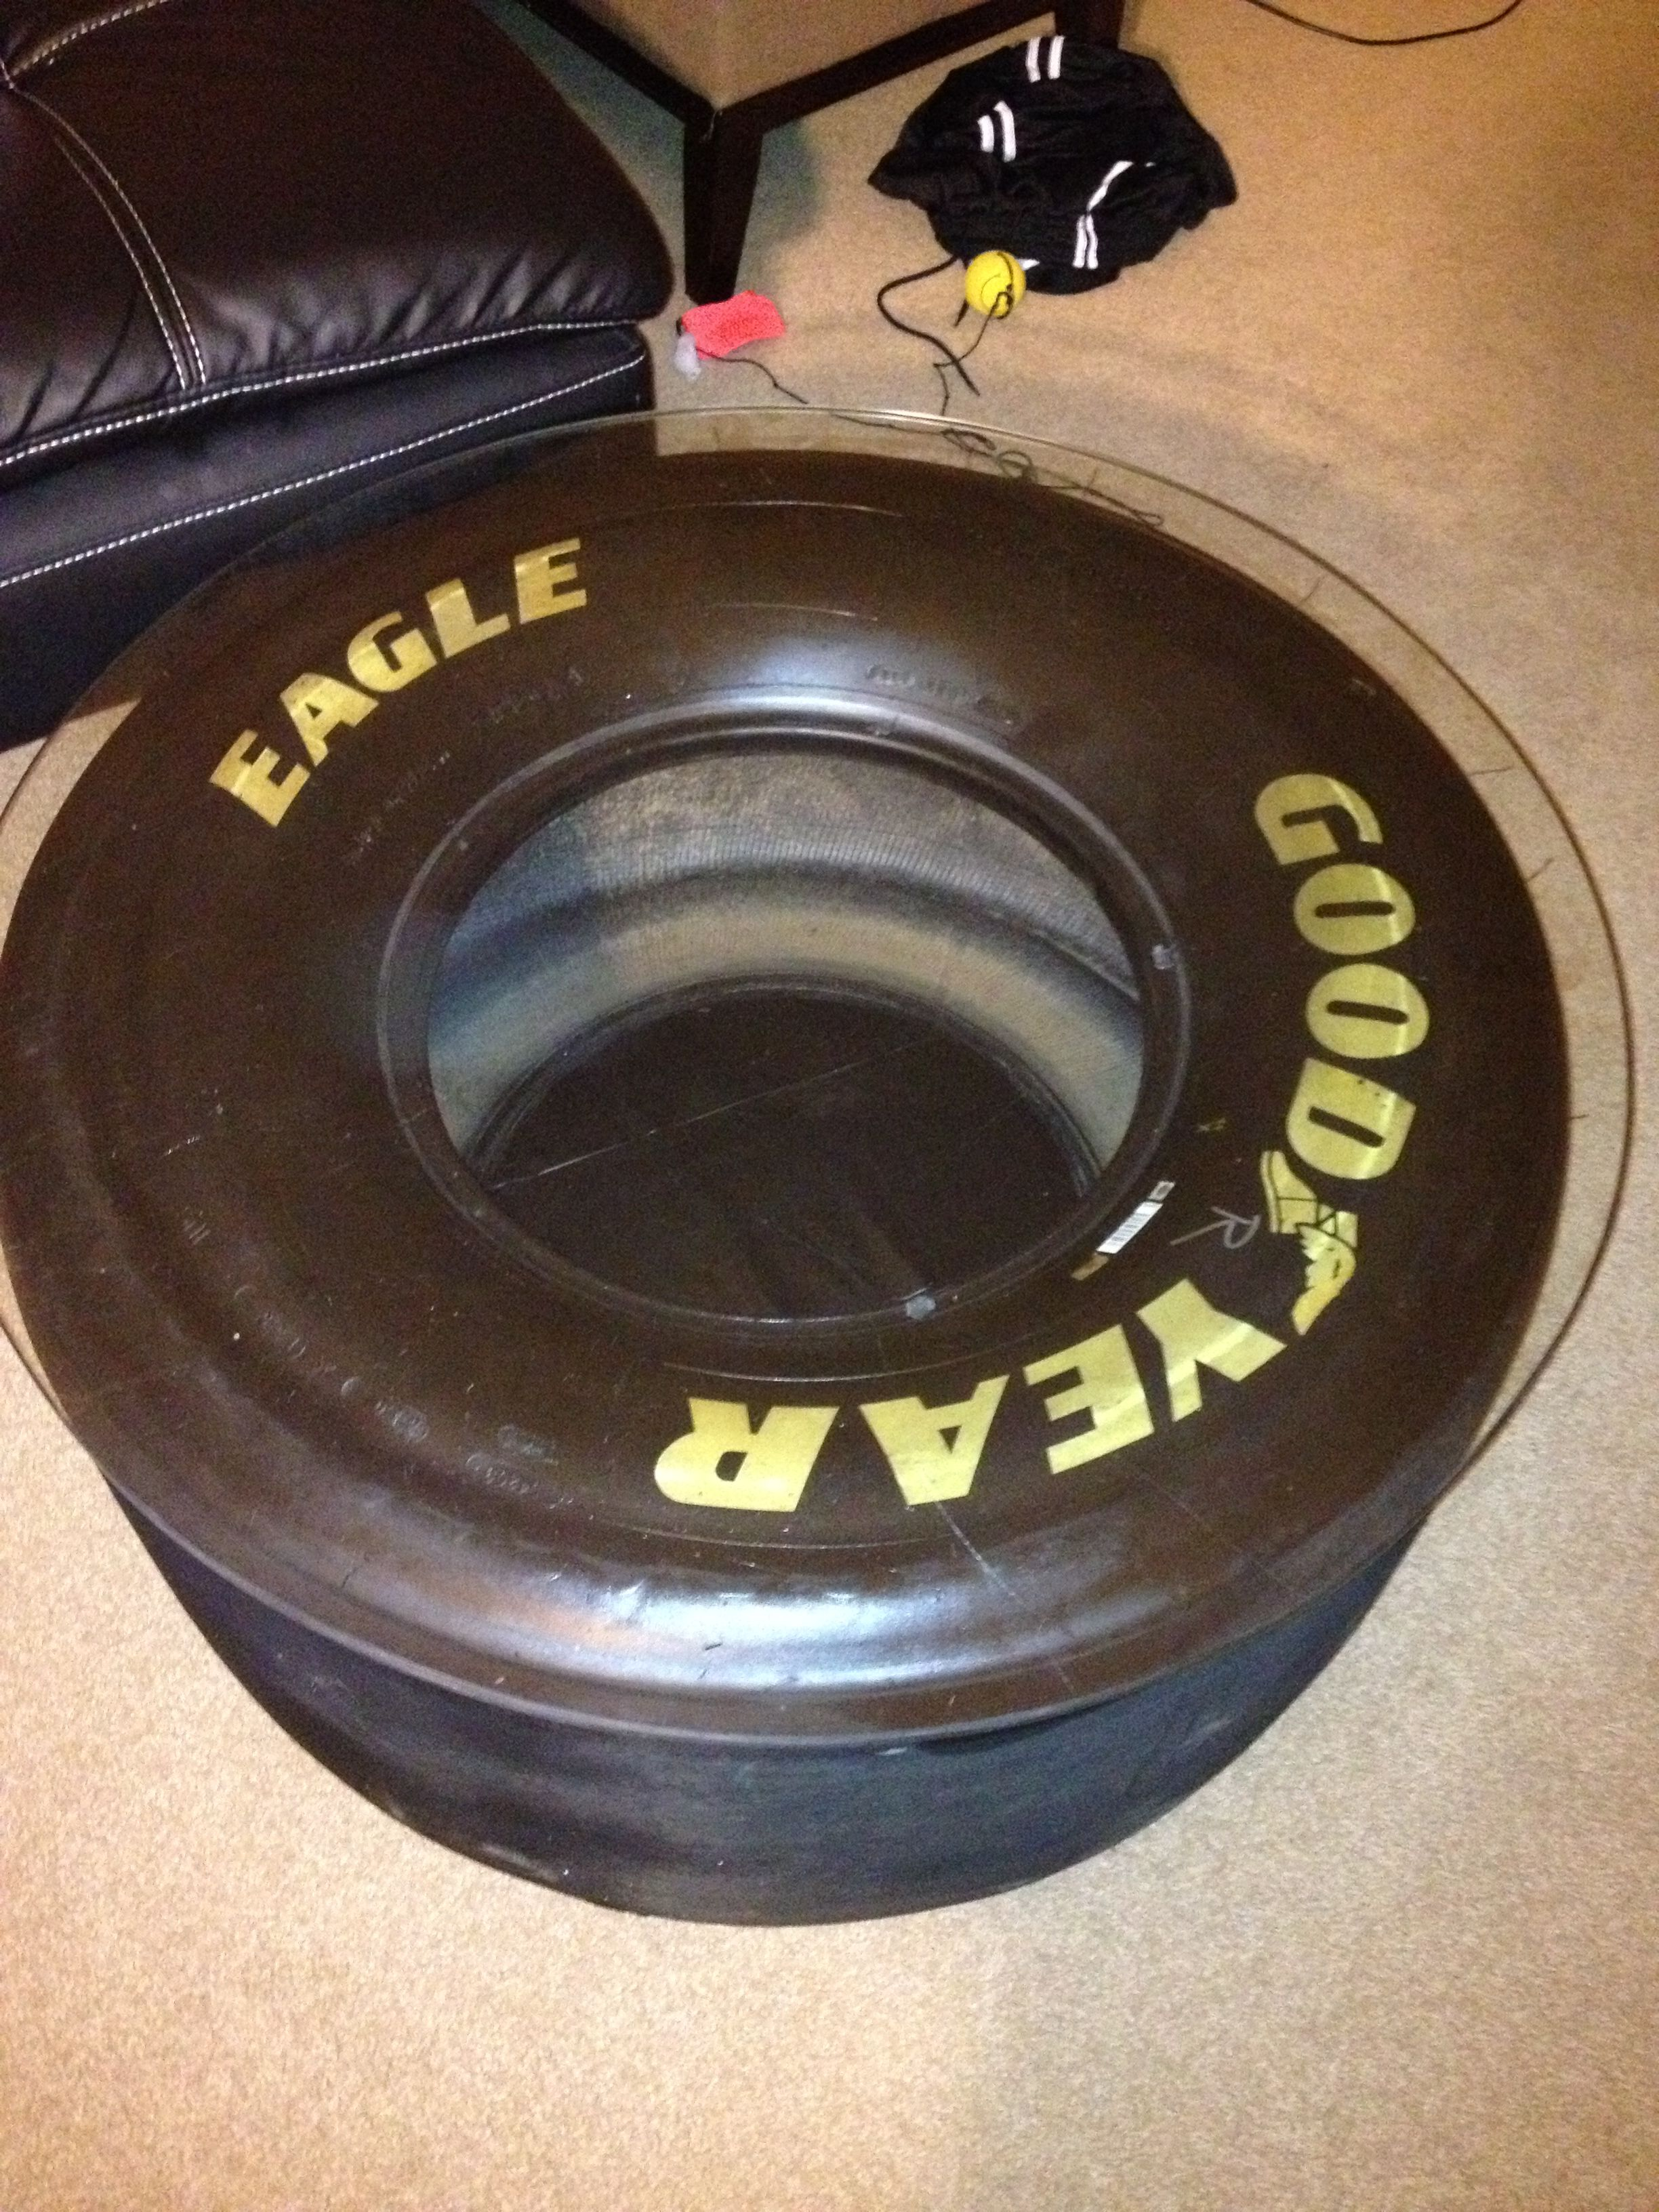 My son made this coffee table from a Nascar tire